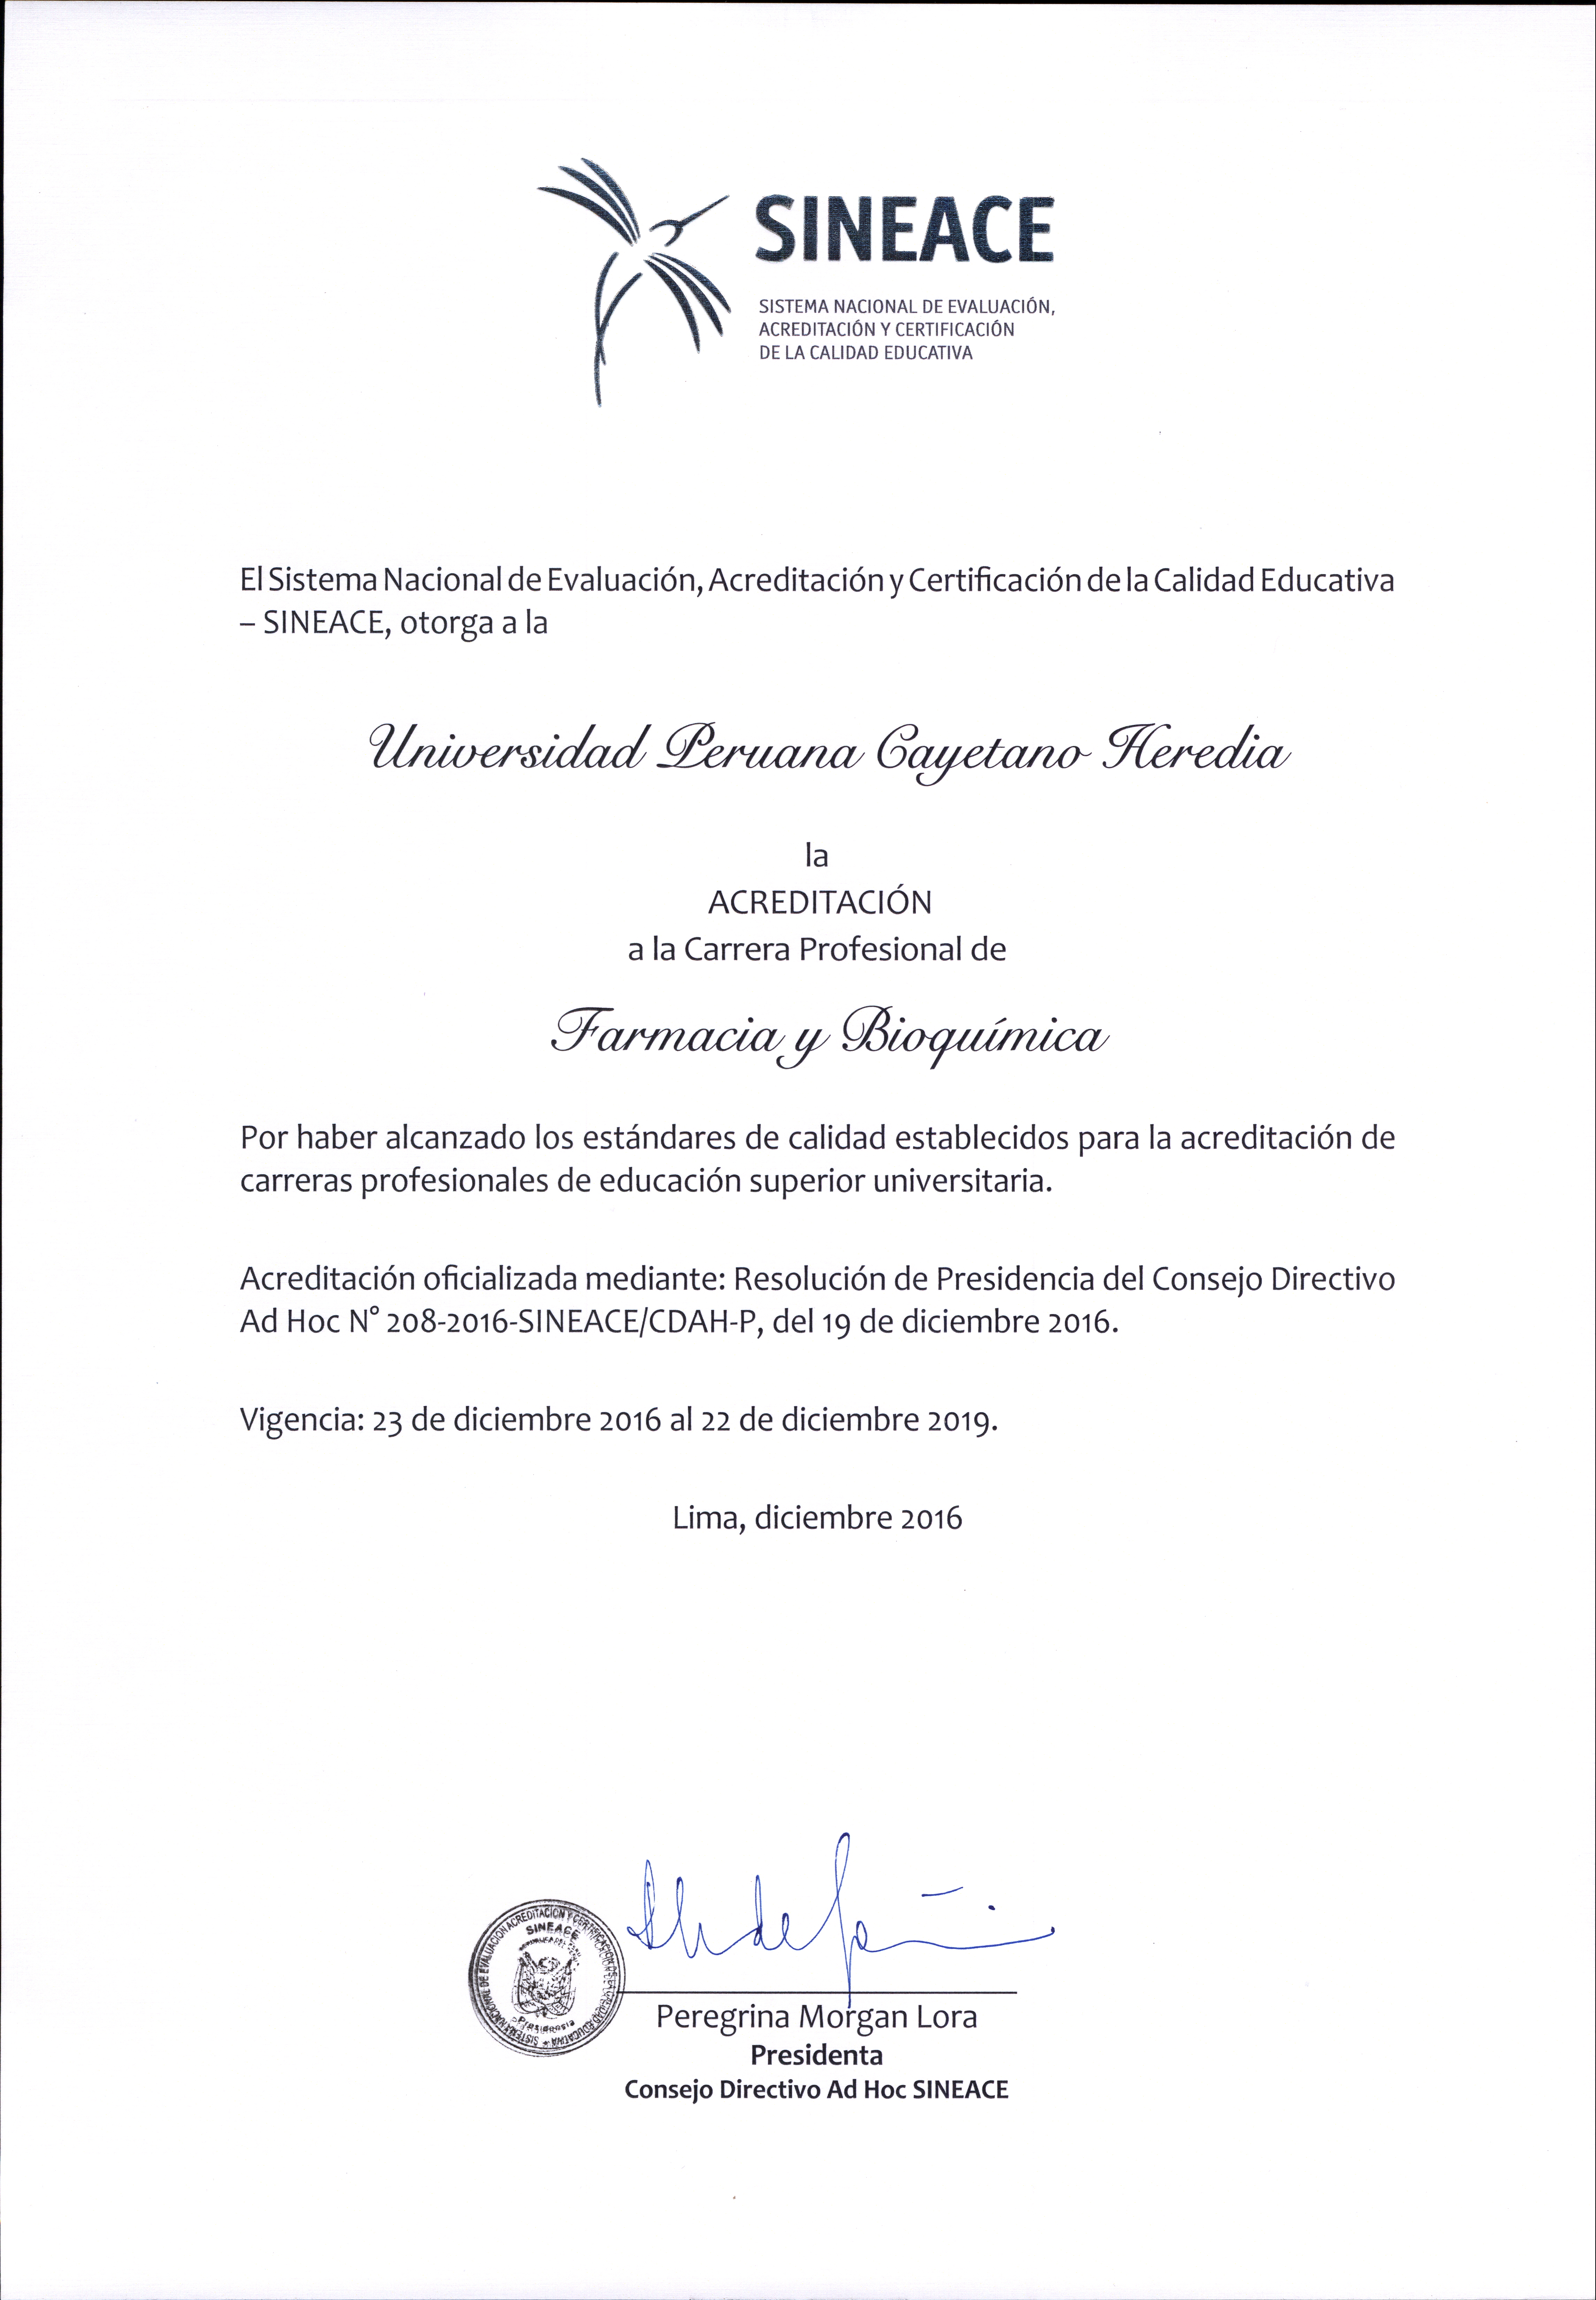 ACREDITACION FARMACIA CERTIFICADO